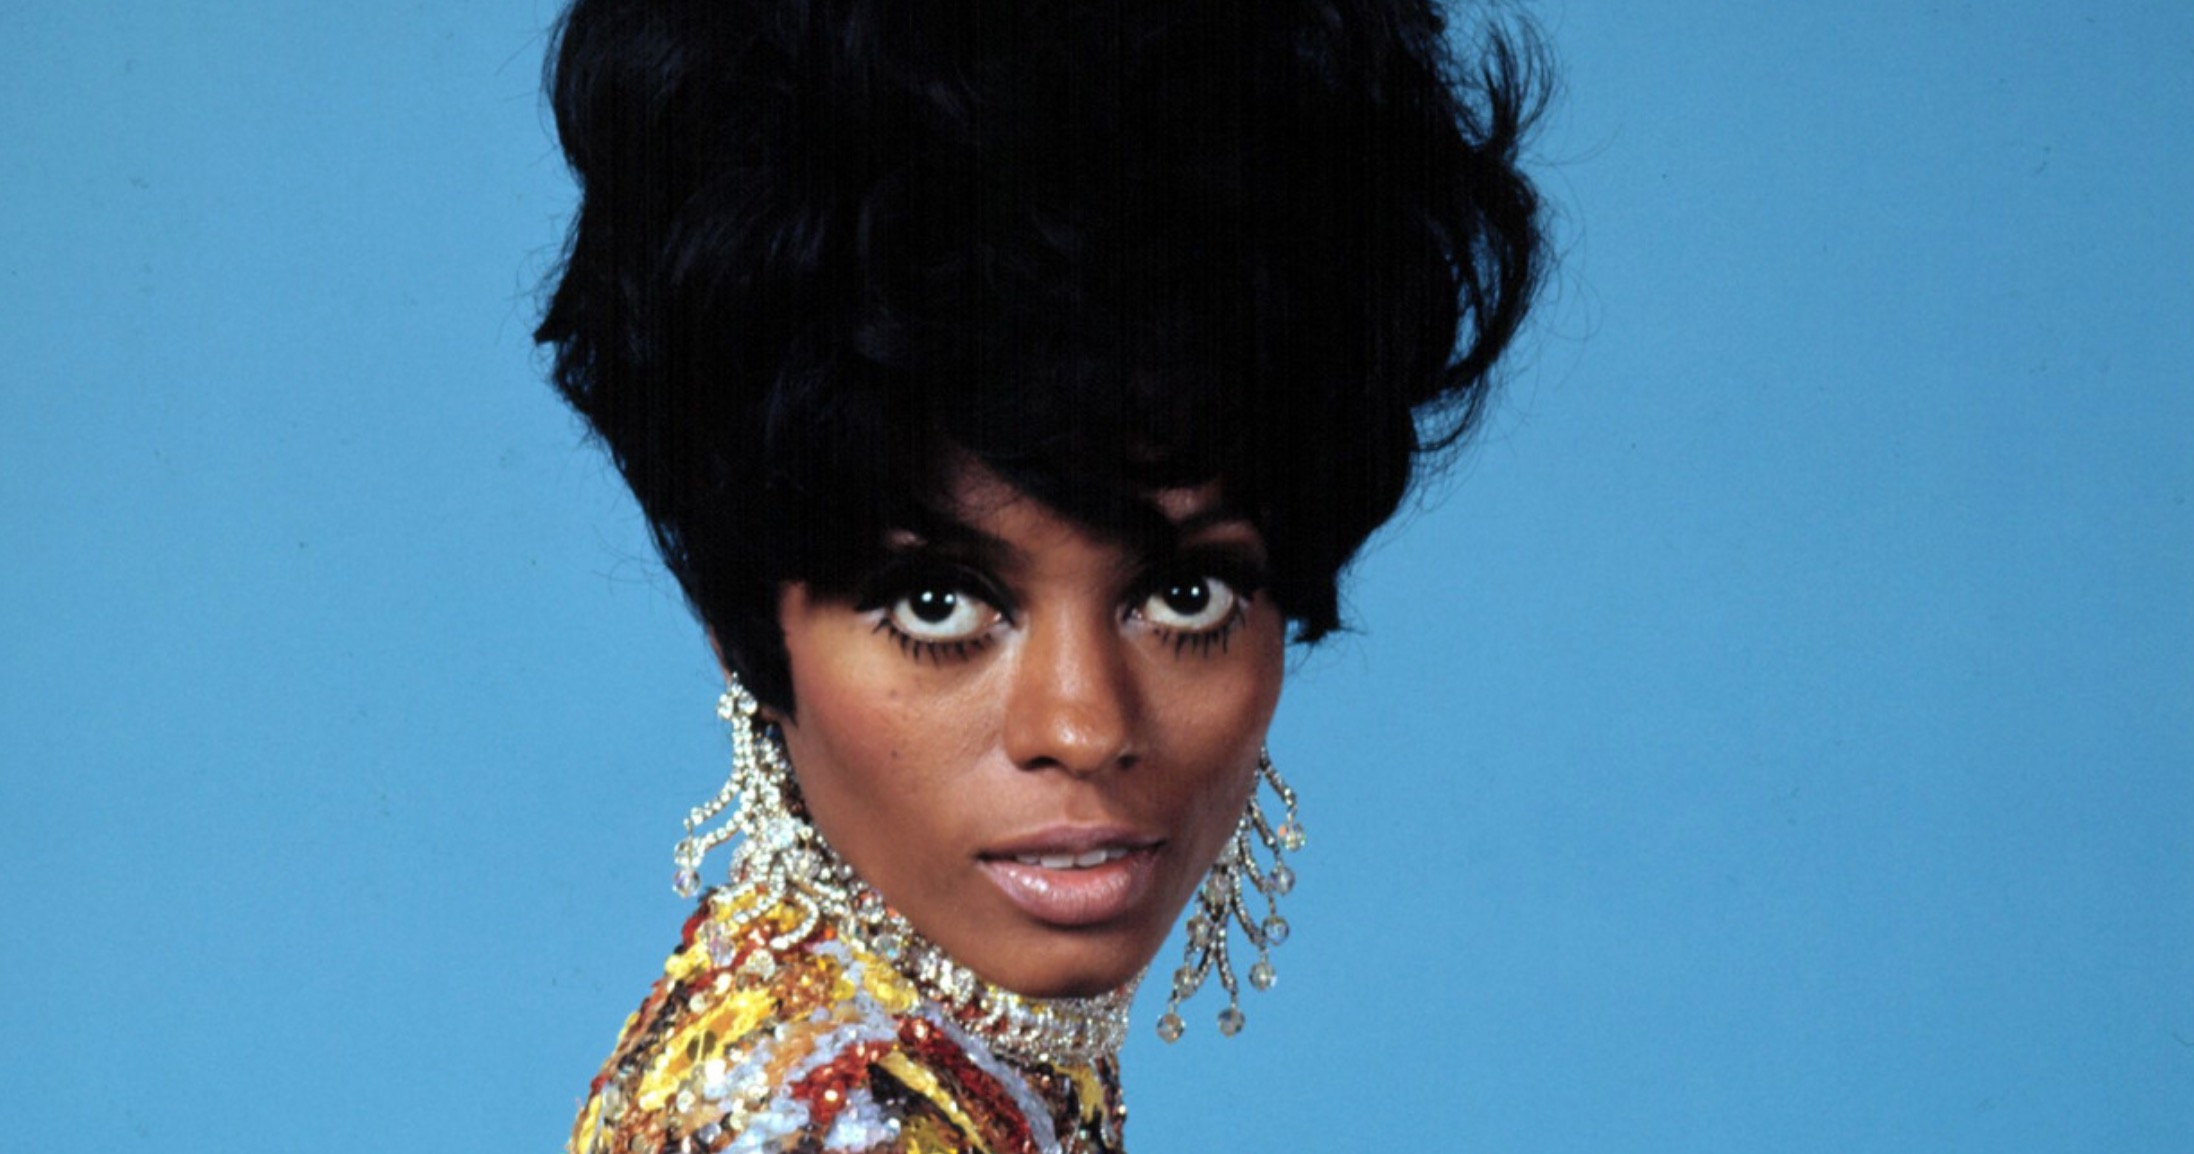 Diana Ross, 70s music